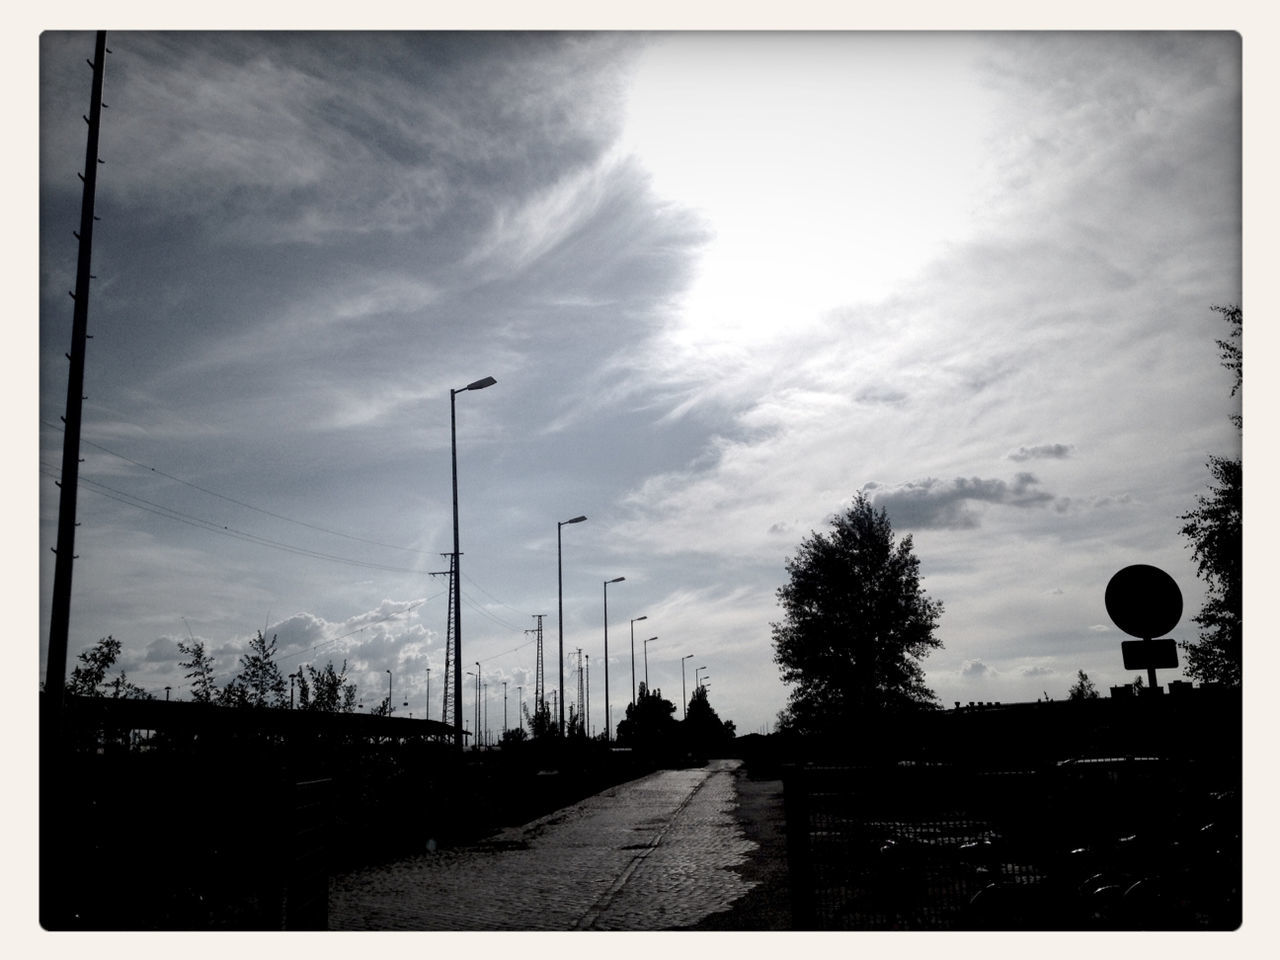 sky, silhouette, cloud - sky, car, road, transportation, street light, outdoors, tree, electricity pylon, no people, nature, telephone line, scenics, day, beauty in nature, city